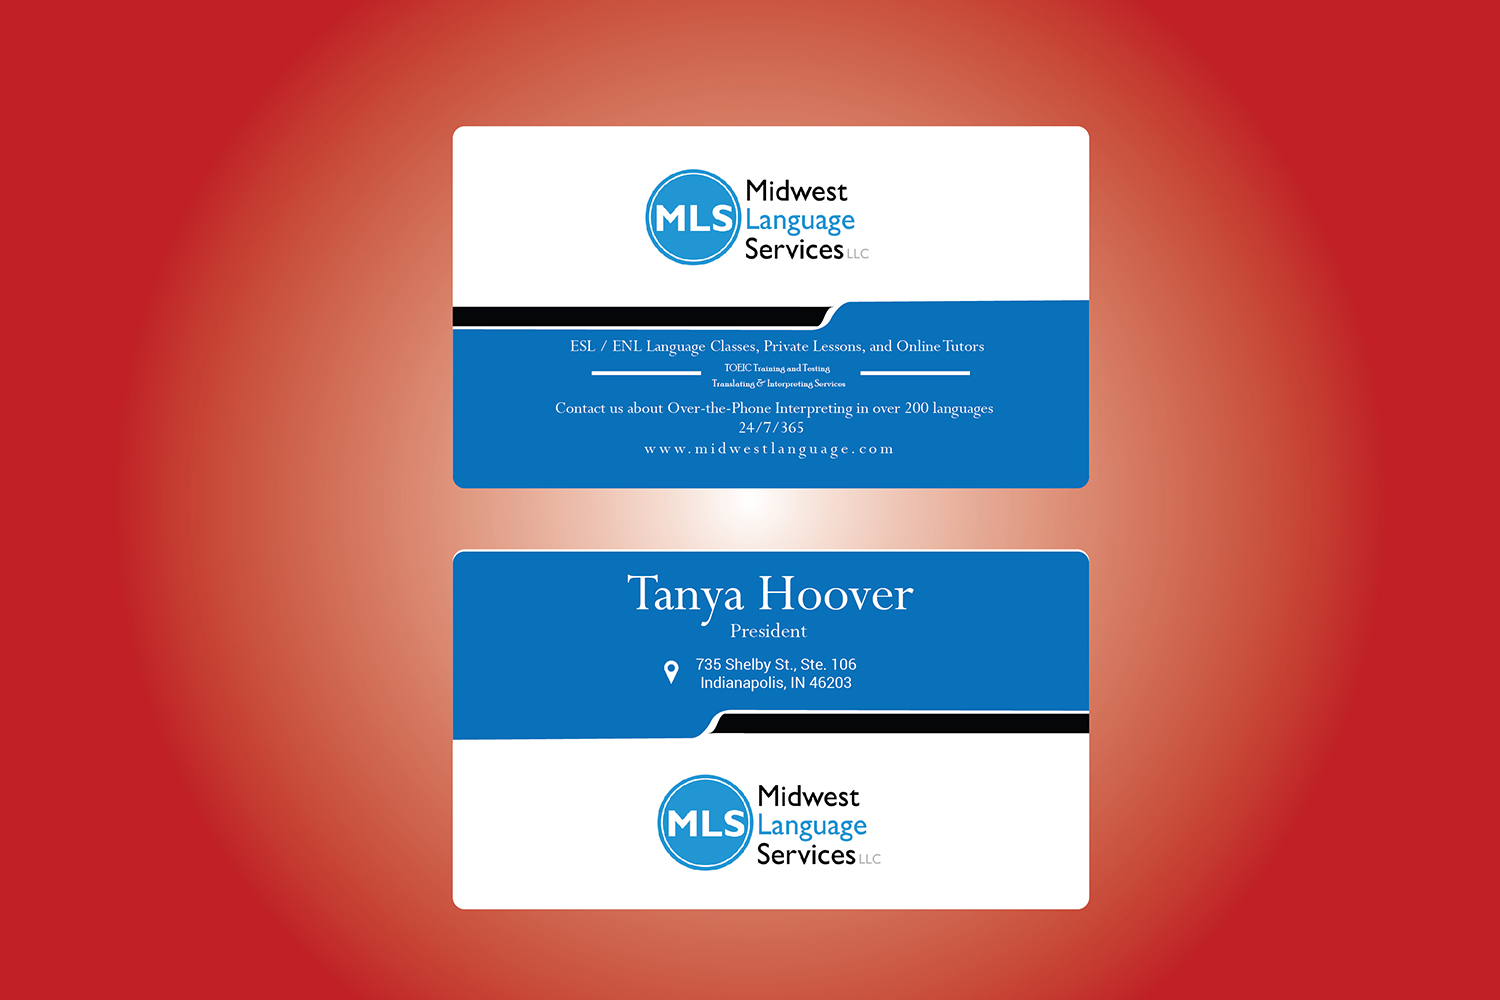 Serious modern business business card design for midwest language business card design by pixel art studio for midwest language services llc design reheart Choice Image